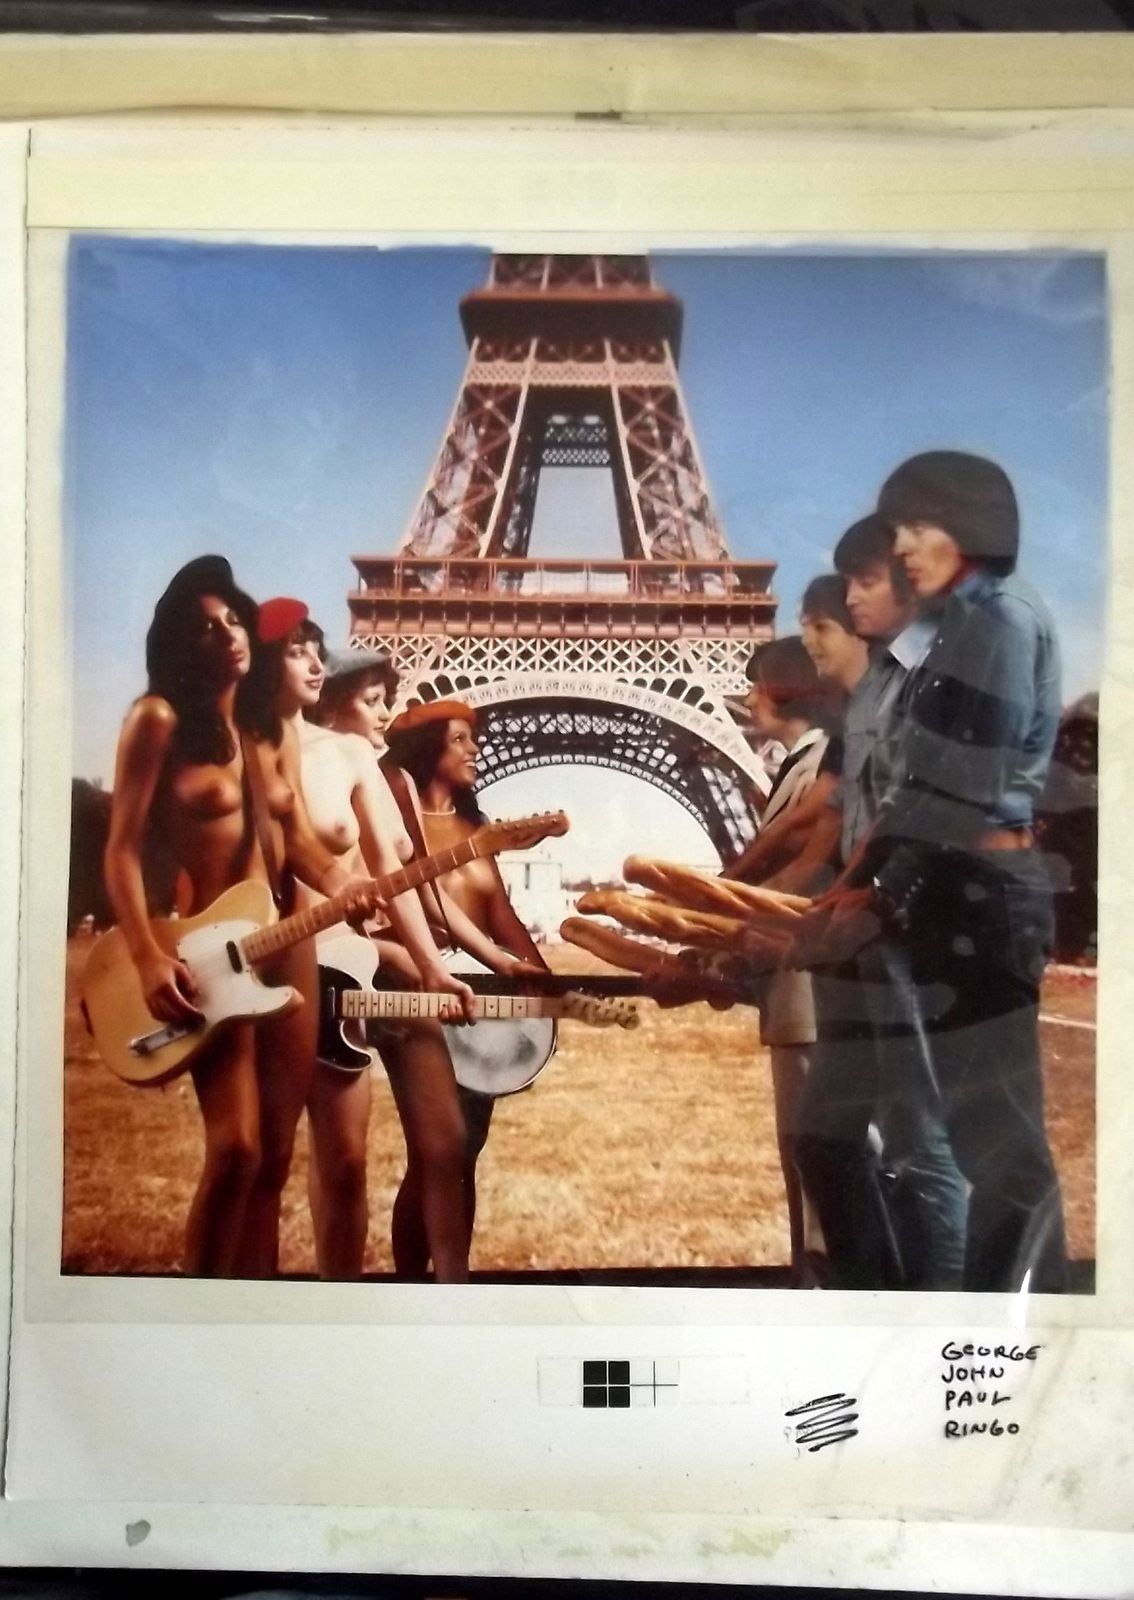 THE BEATLES (NATIONAL LAMPOON) ORIGINAL PARODY MONTAGE PHOTO